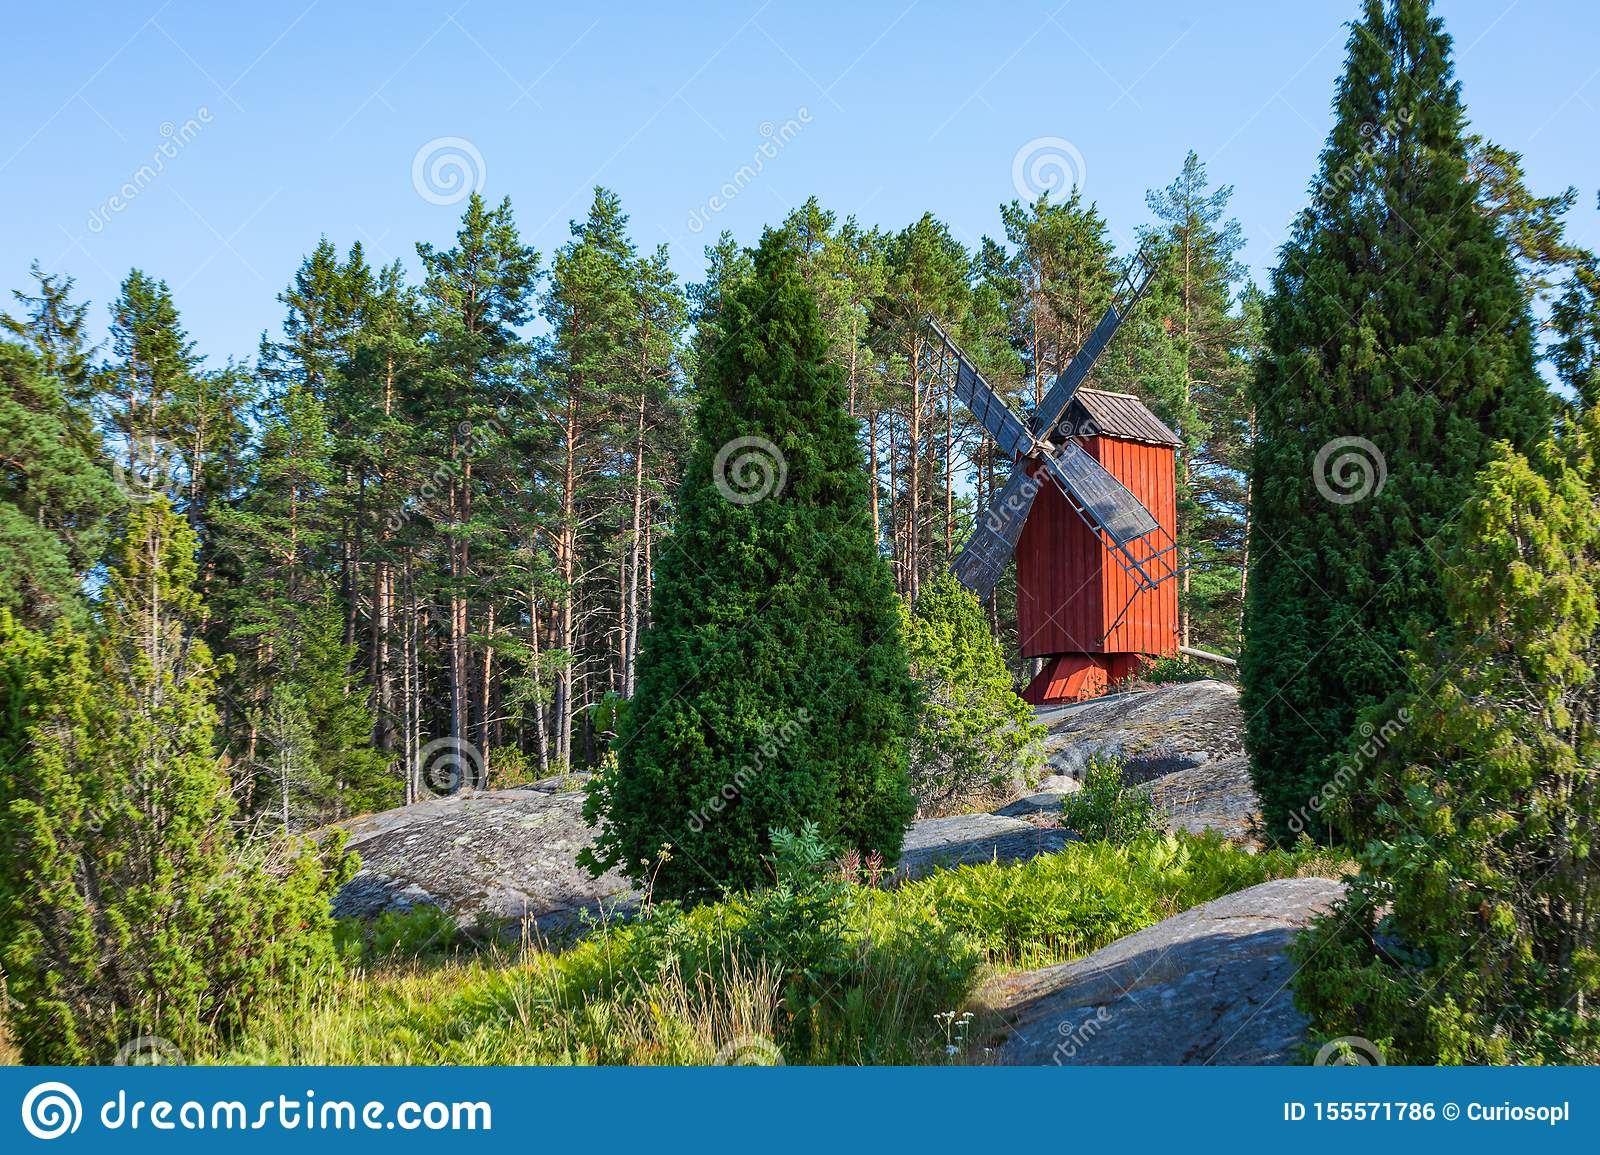 Red wooden windmill in a old vintage rural landscape at Aland islands, Finland. Jan Karlsgarden open air museum. Ethnographic park